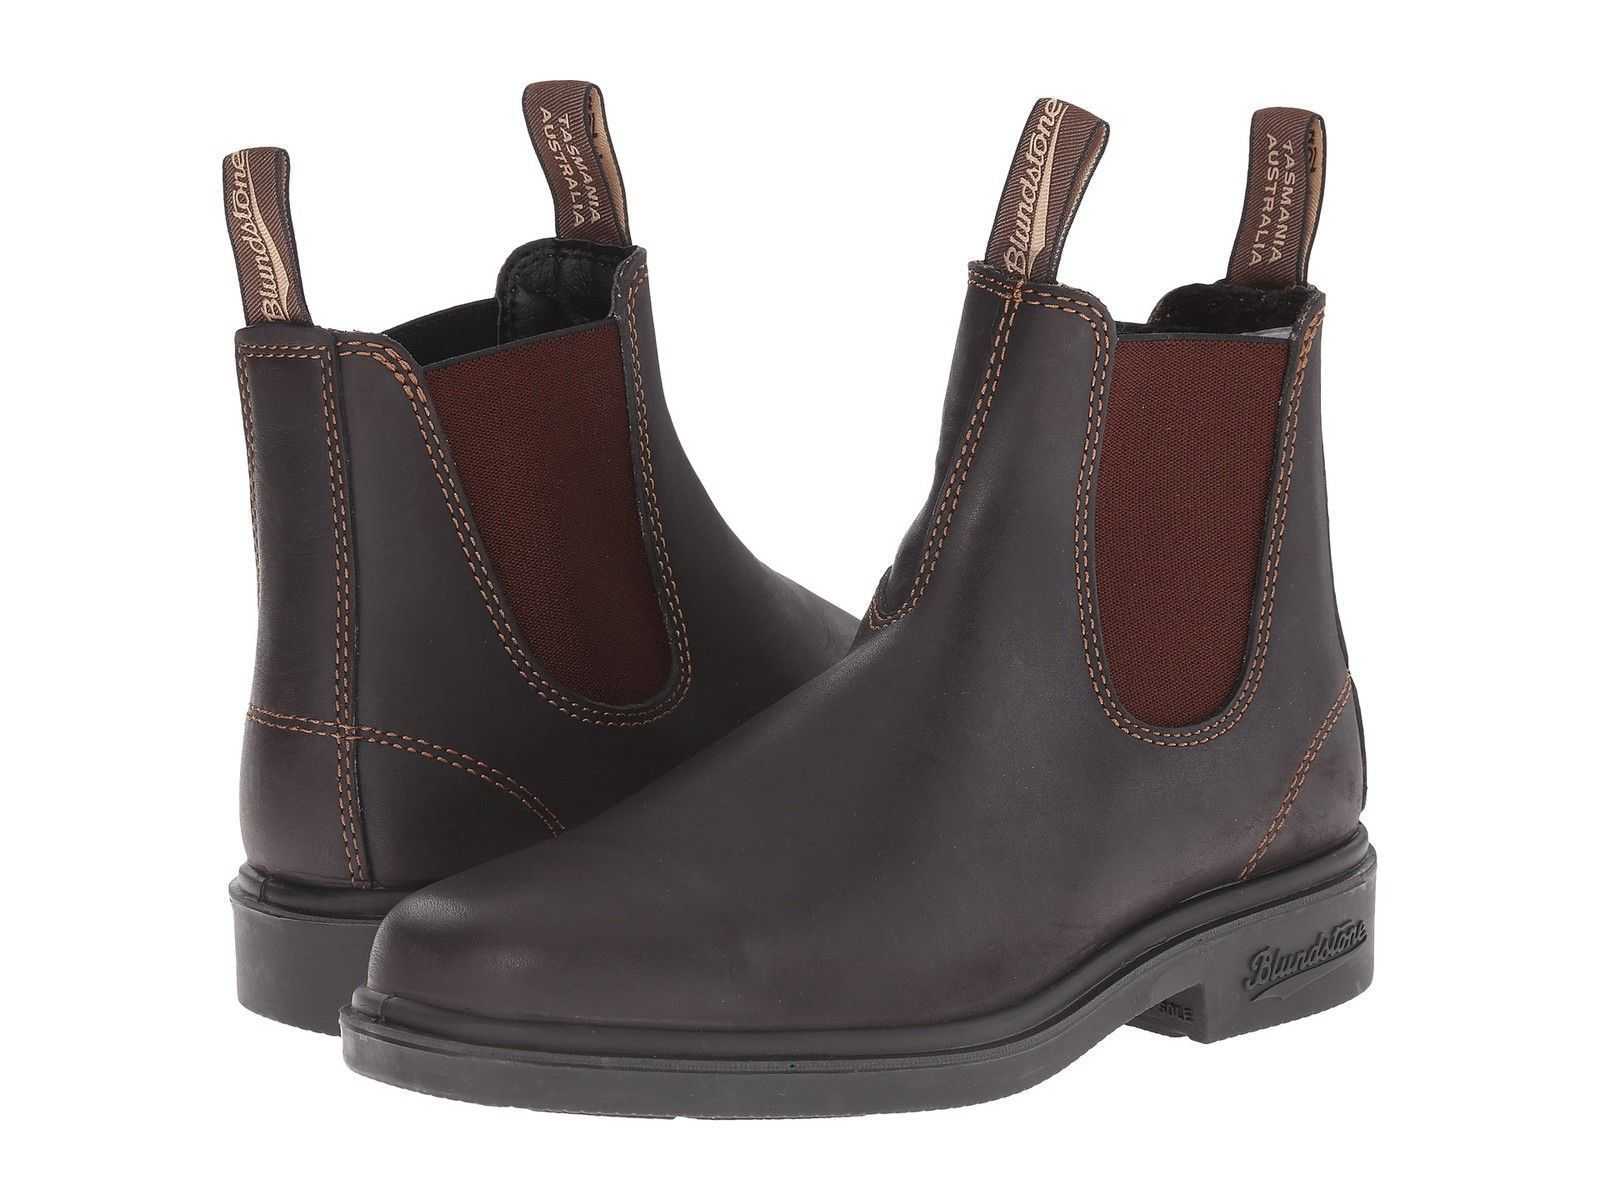 Blundstone 062 stout brown unisex leather non-safety chelsea chelsea chelsea boot size 6-12 UK a15c68